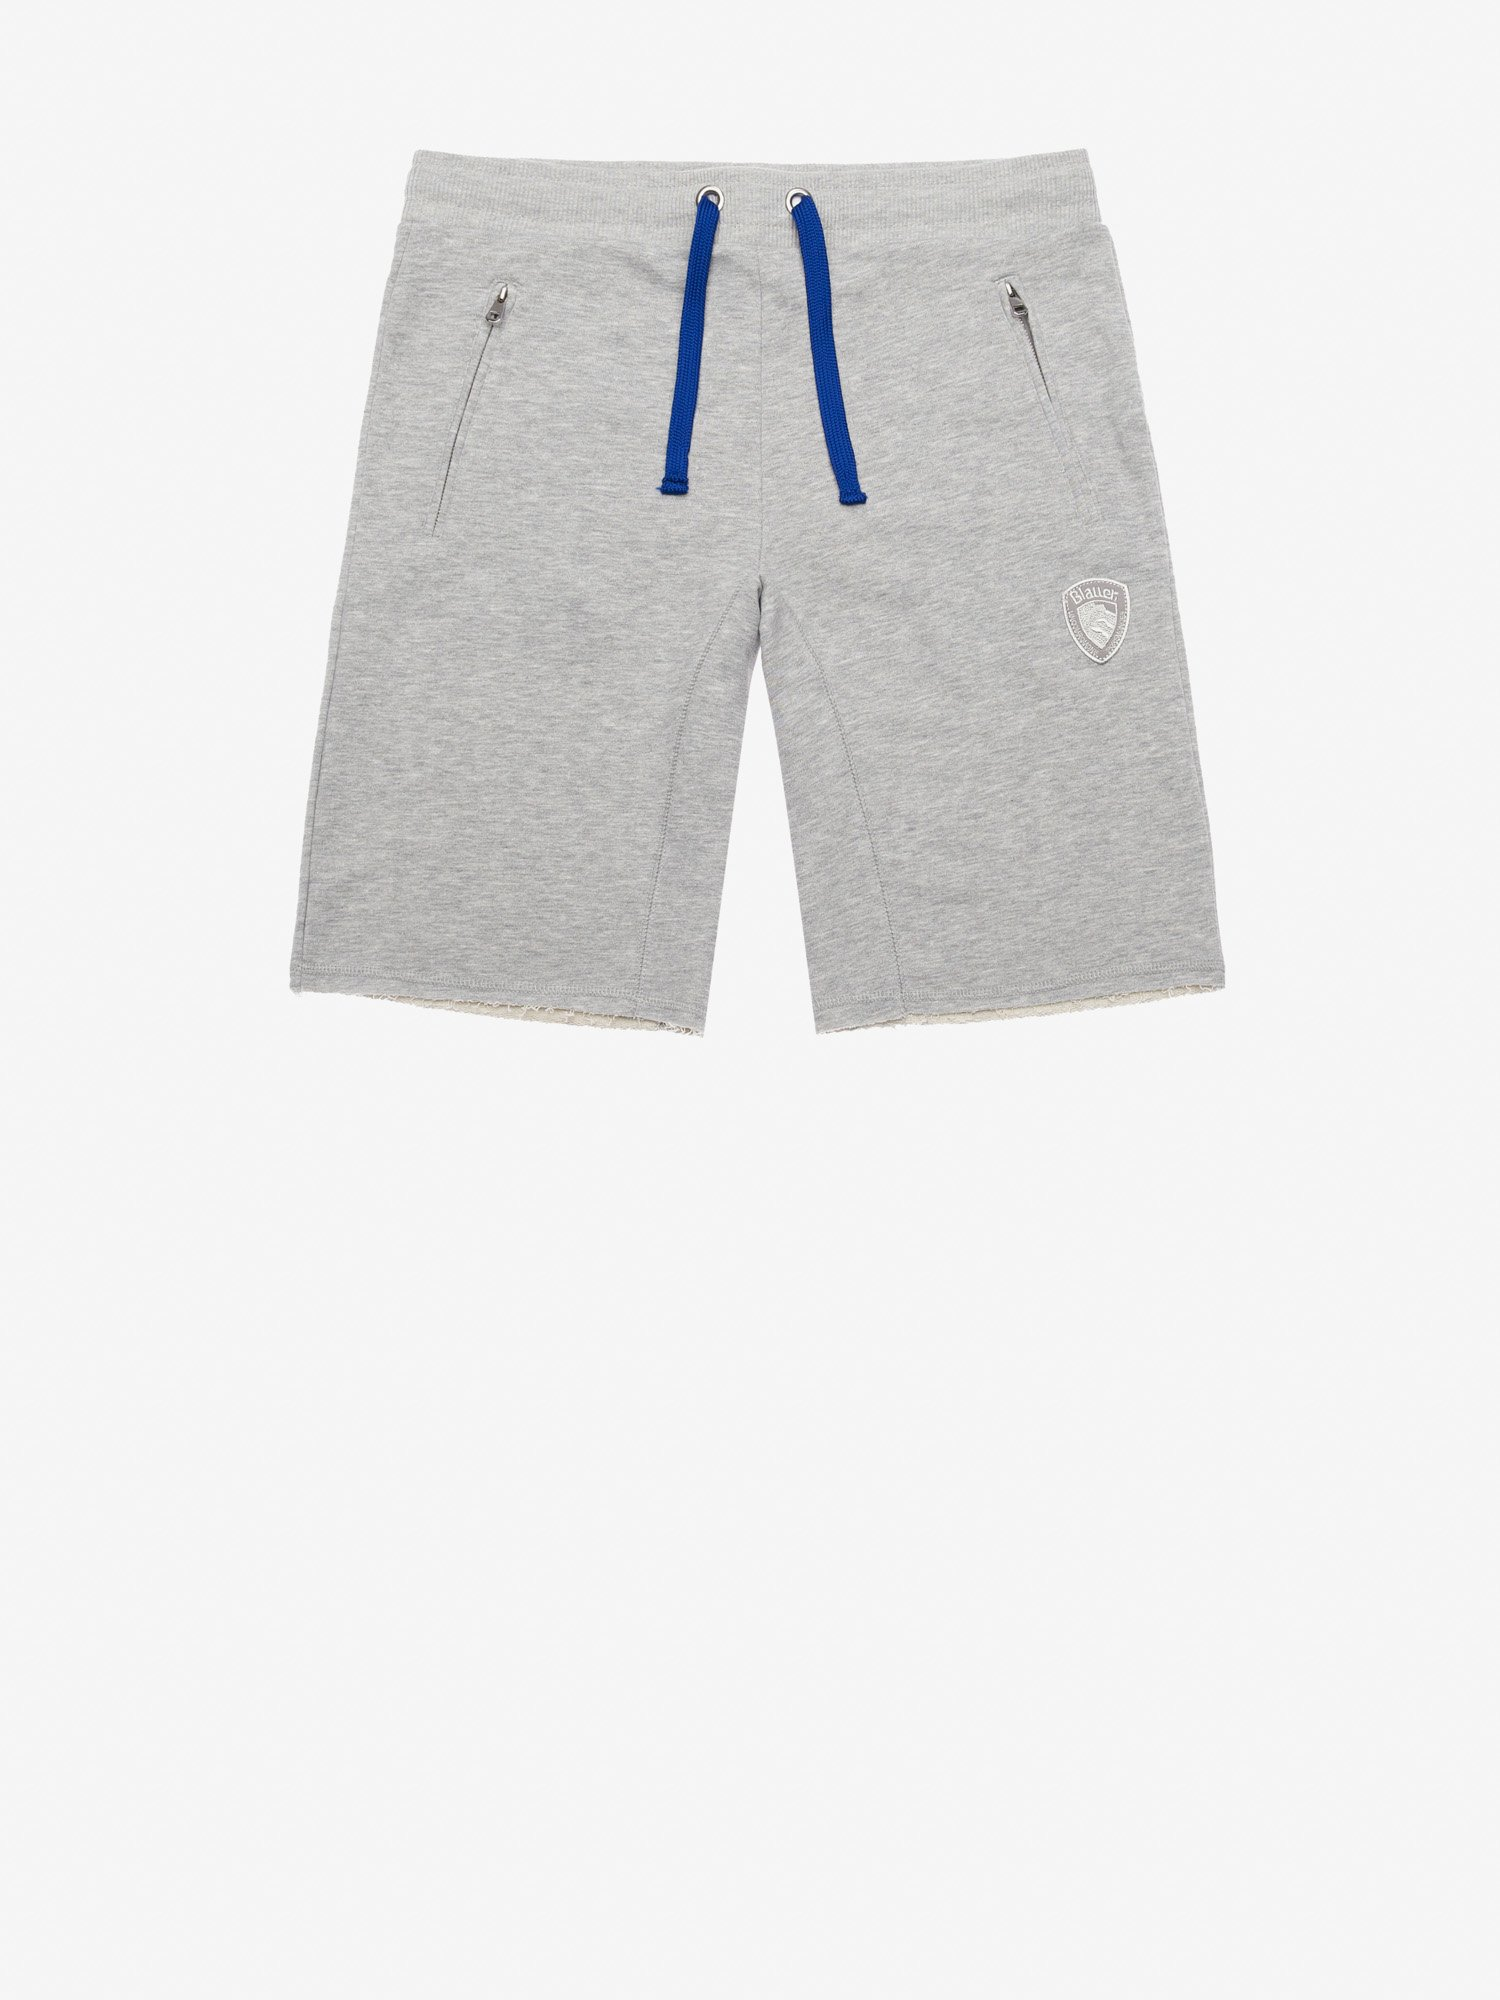 GARMENT DYED COTTON SHORTS - Blauer